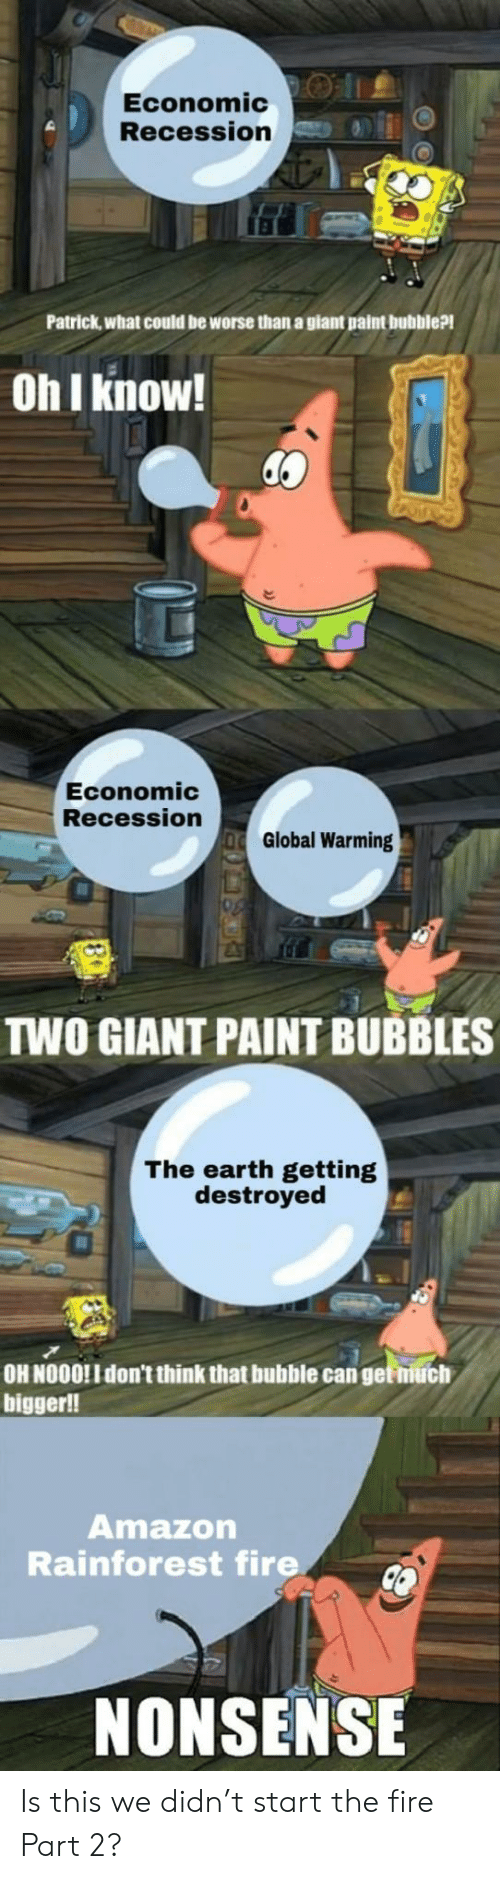 Amazon, Fire, and Global Warming: Economic:O |1.  Recession  Patrick,what could be worse than a giant paint bubble?!  Oh I know!  Economic  Recession  Global Warming  TWO GIANT PAINT BUBBLES  The earth getting  destroyed  OH NOOO!I don't think that bubble can get niuch  bigger!!  Amazon  Rainforest fire  NONSENSE Is this we didn't start the fire Part 2?